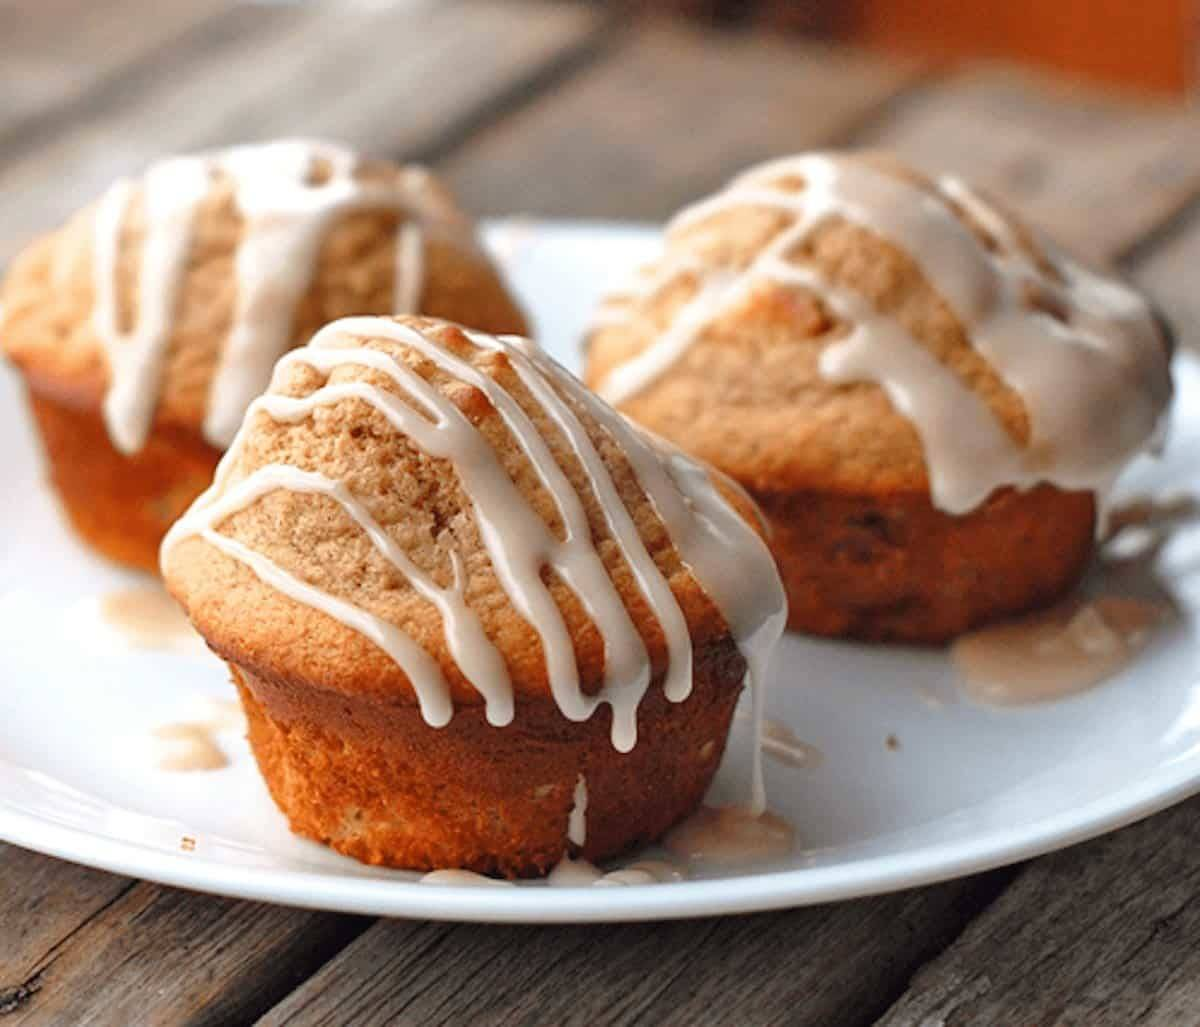 Apple cinnamon muffins topped with a warm vanilla glaze.